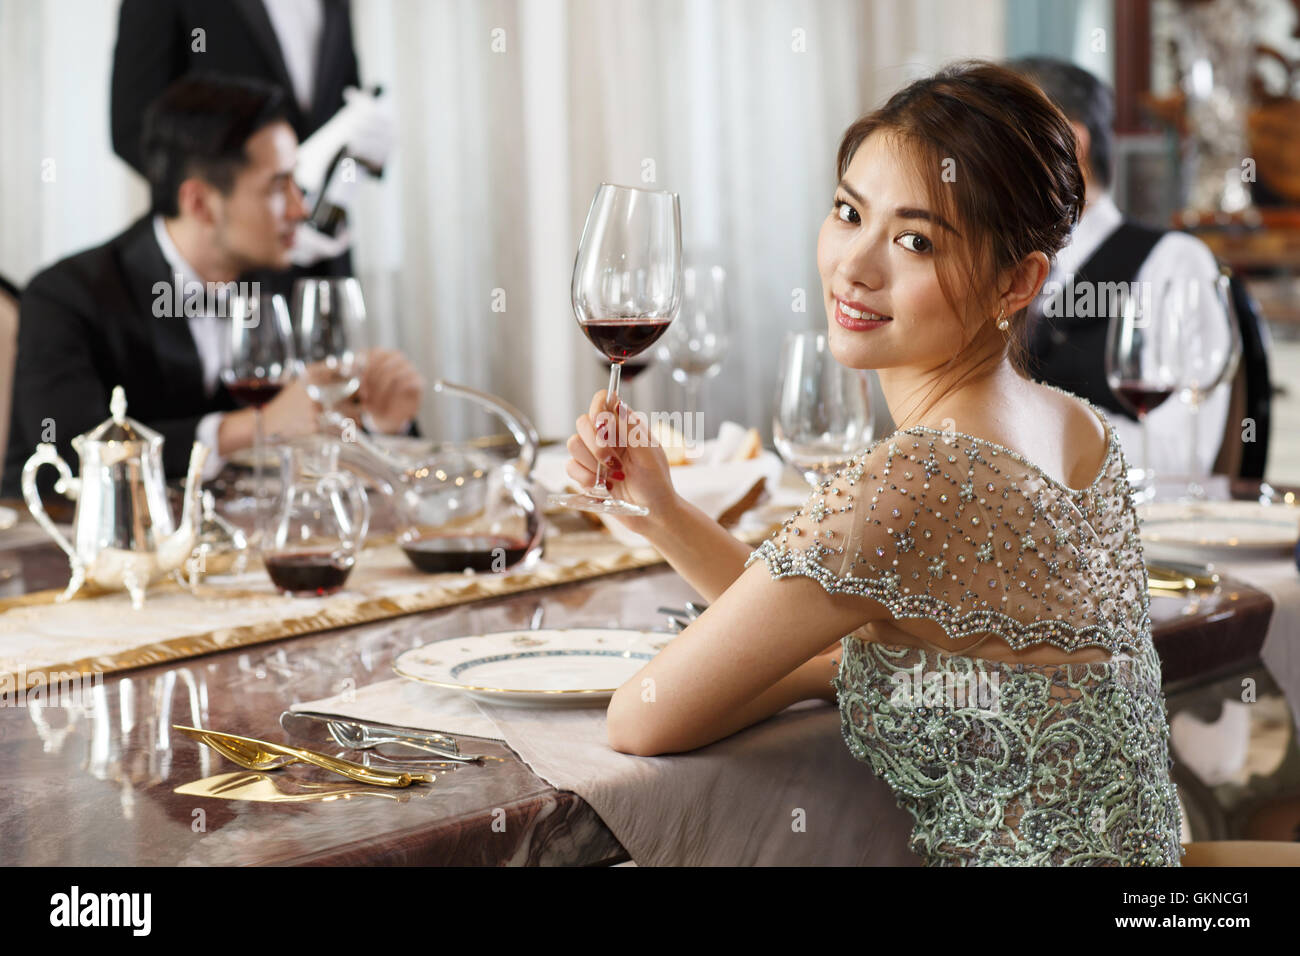 Business people dinner - Stock Image